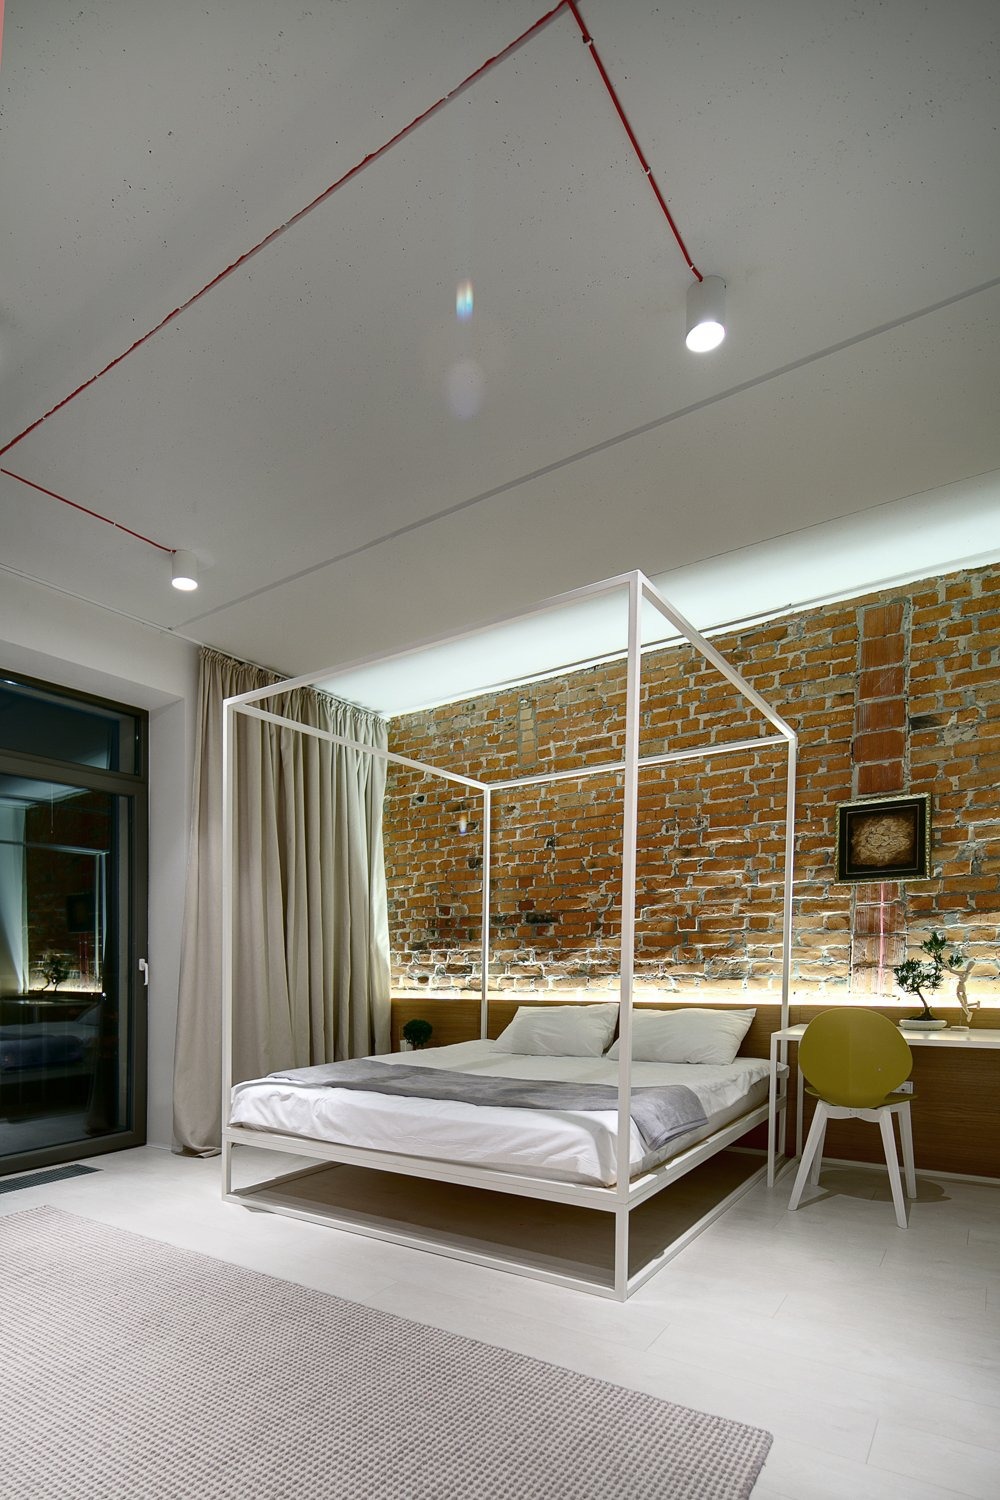 Bed Better Than Ikea - A modern home with personality of perfect for a fun couple